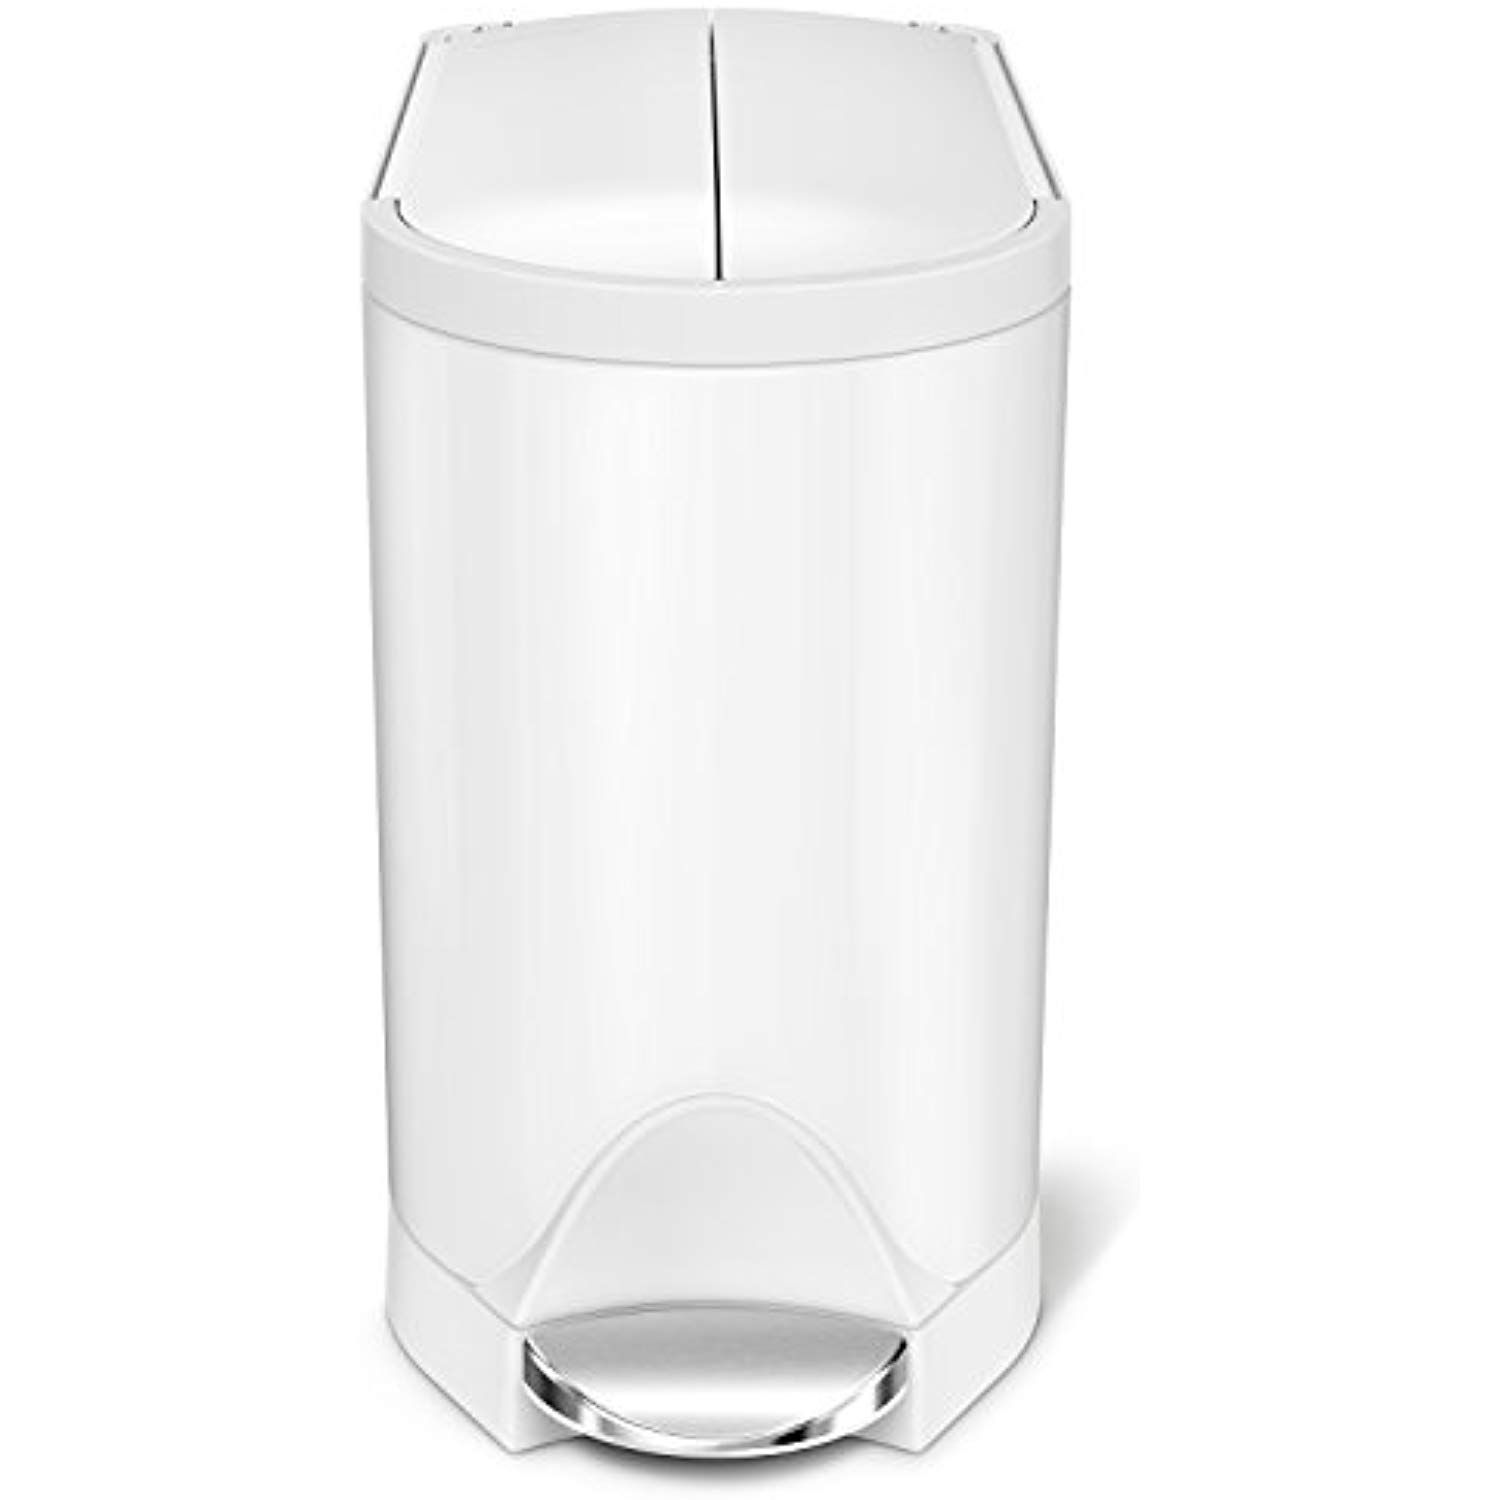 Simplehuman 10 Liter 2 6 Gallon Butterfly Lid Bathroom Step Trash Can White Steel Find Out More About The Great P Simplehuman Butterfly Bathroom Trash Can